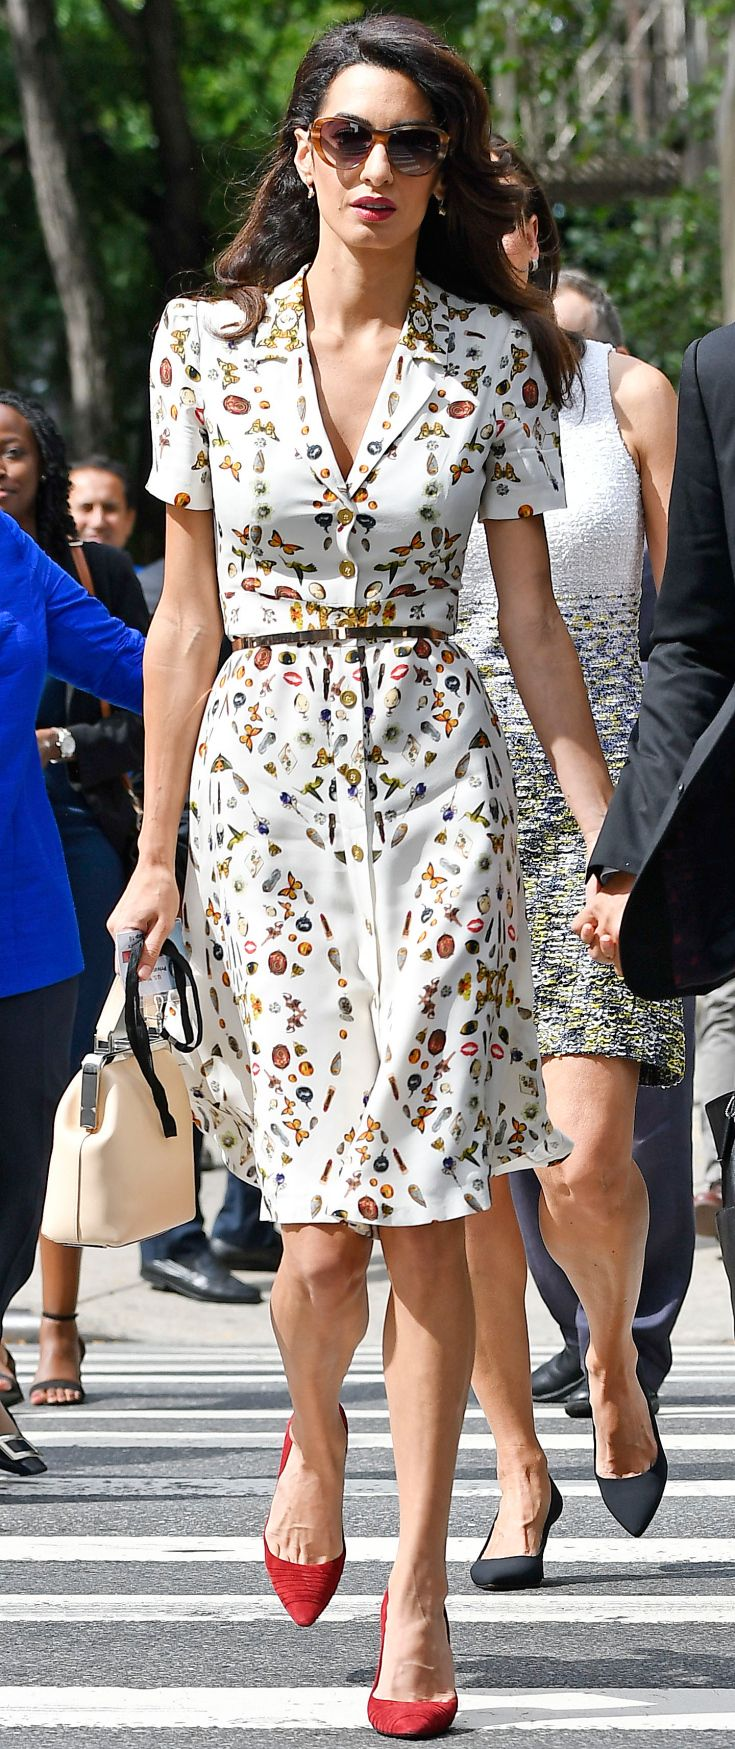 I love the style and cut of this dress. If I could find on in a flattering color or pattern it would make my day!